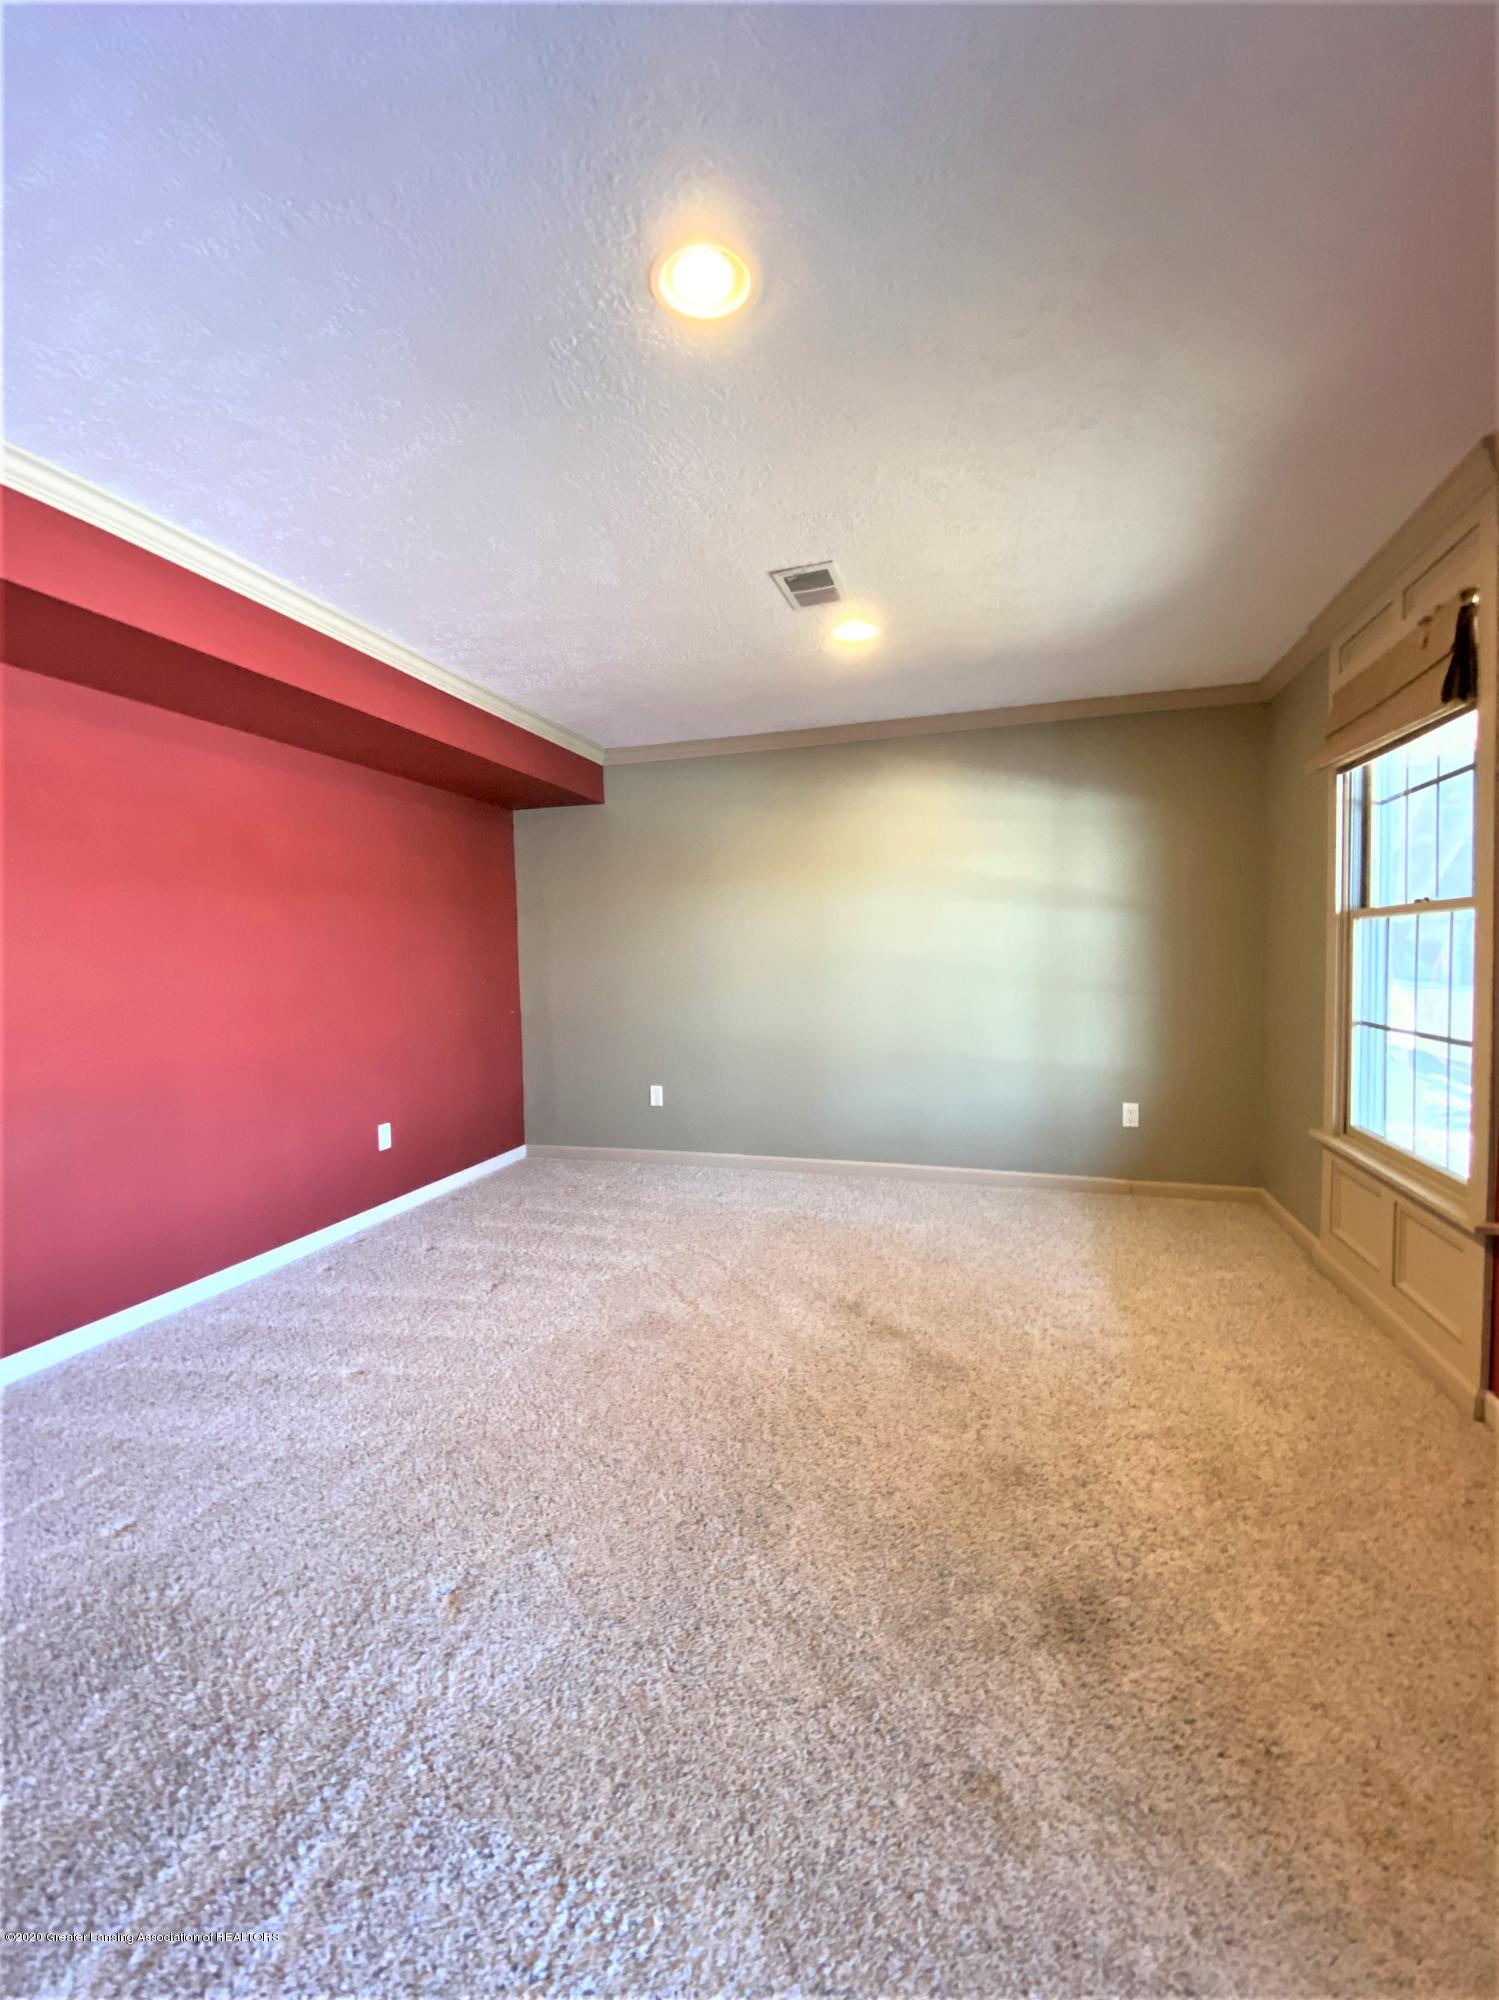 7258 Hollister Rd - Hol Bed 4-2 - 27